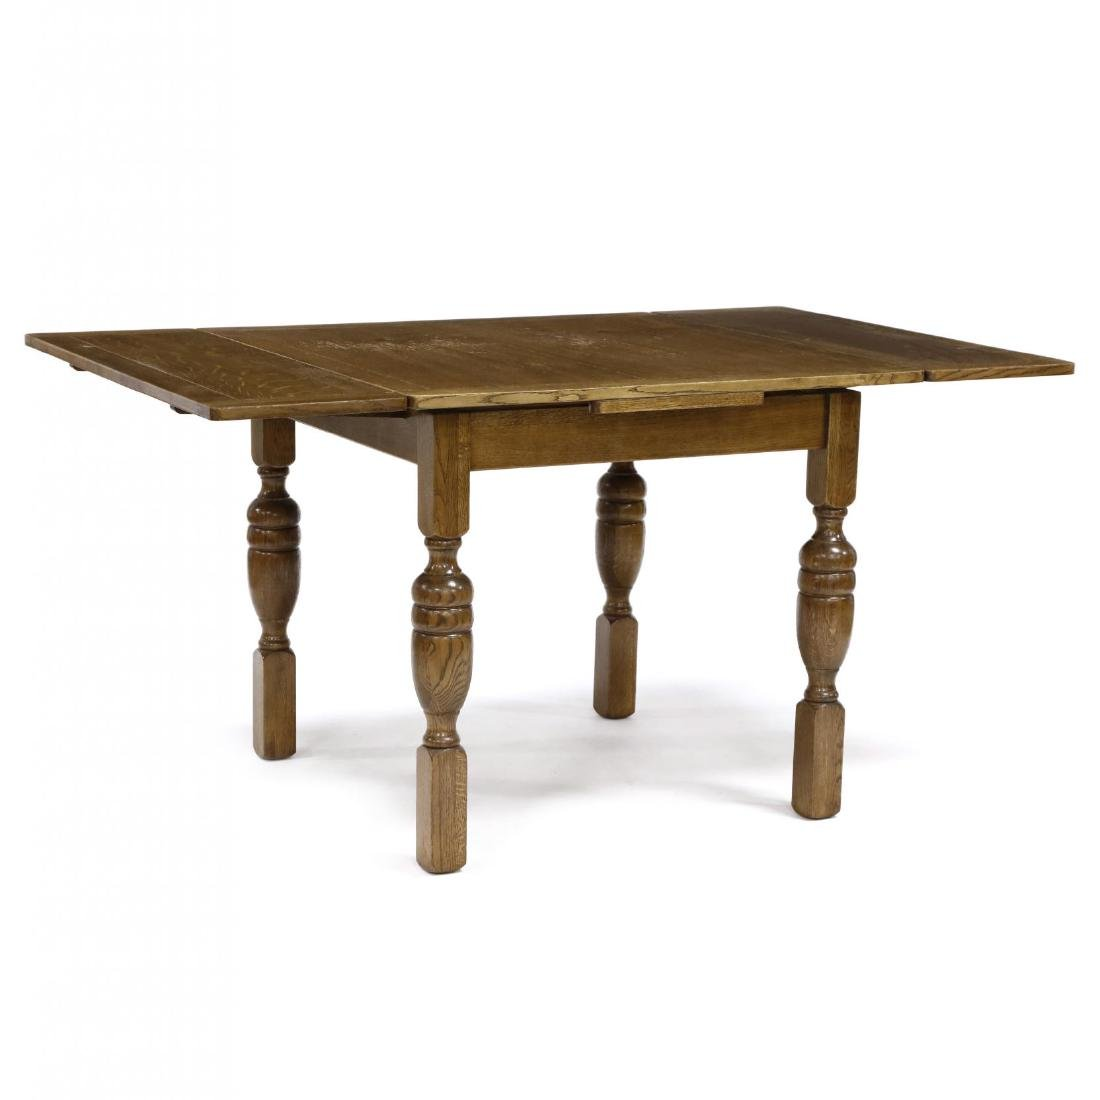 Vintage English Oak Pub Table - 3